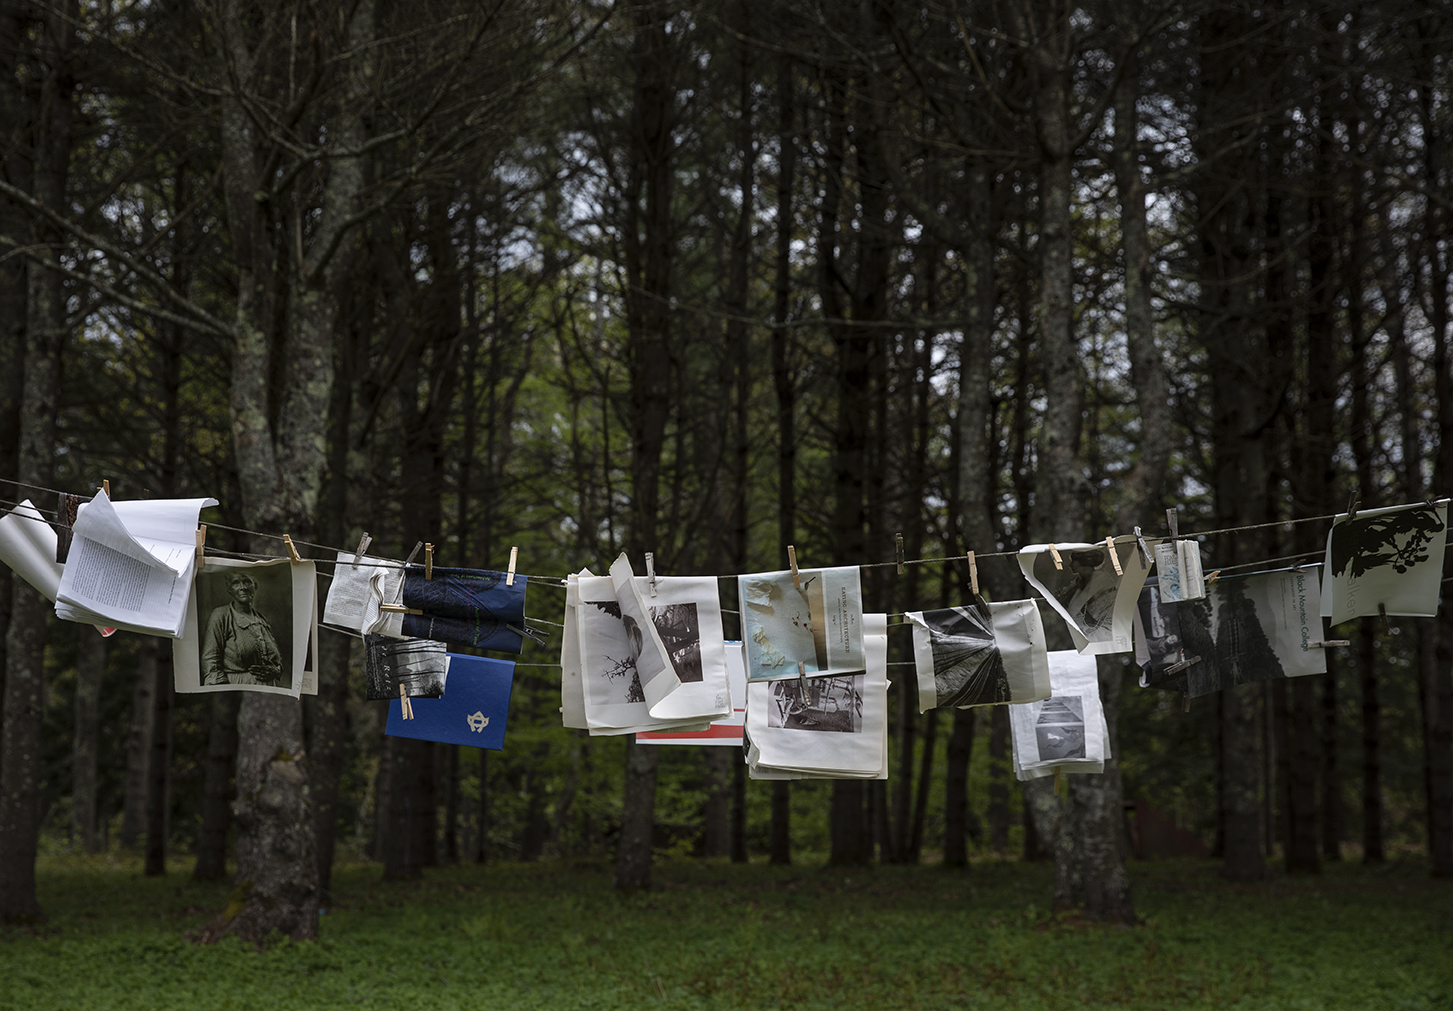 closeline with magazines, manuscripts and photos clipped to it, in front of dark woods.